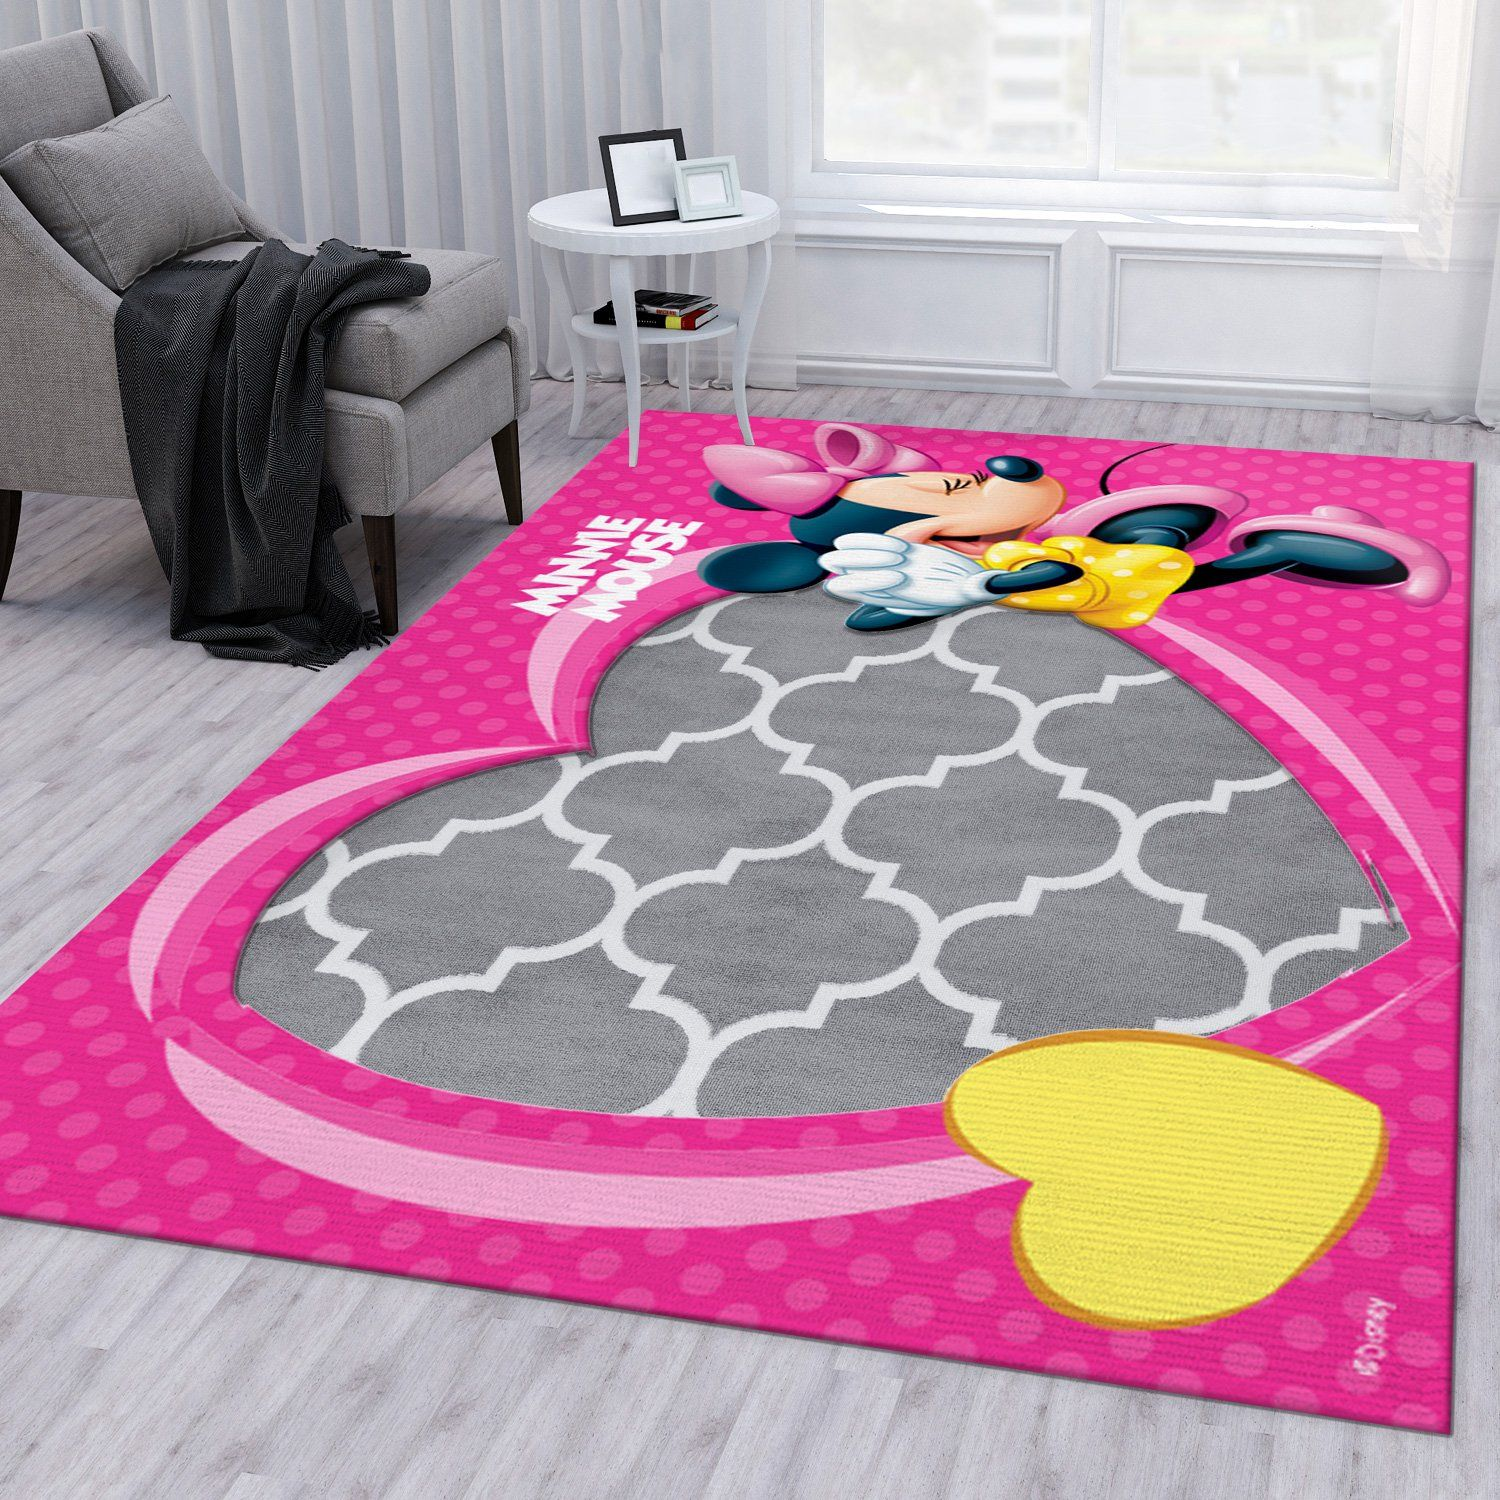 Minnie Mouse Bathroom RugMinnie Mouse Bathroom Rug